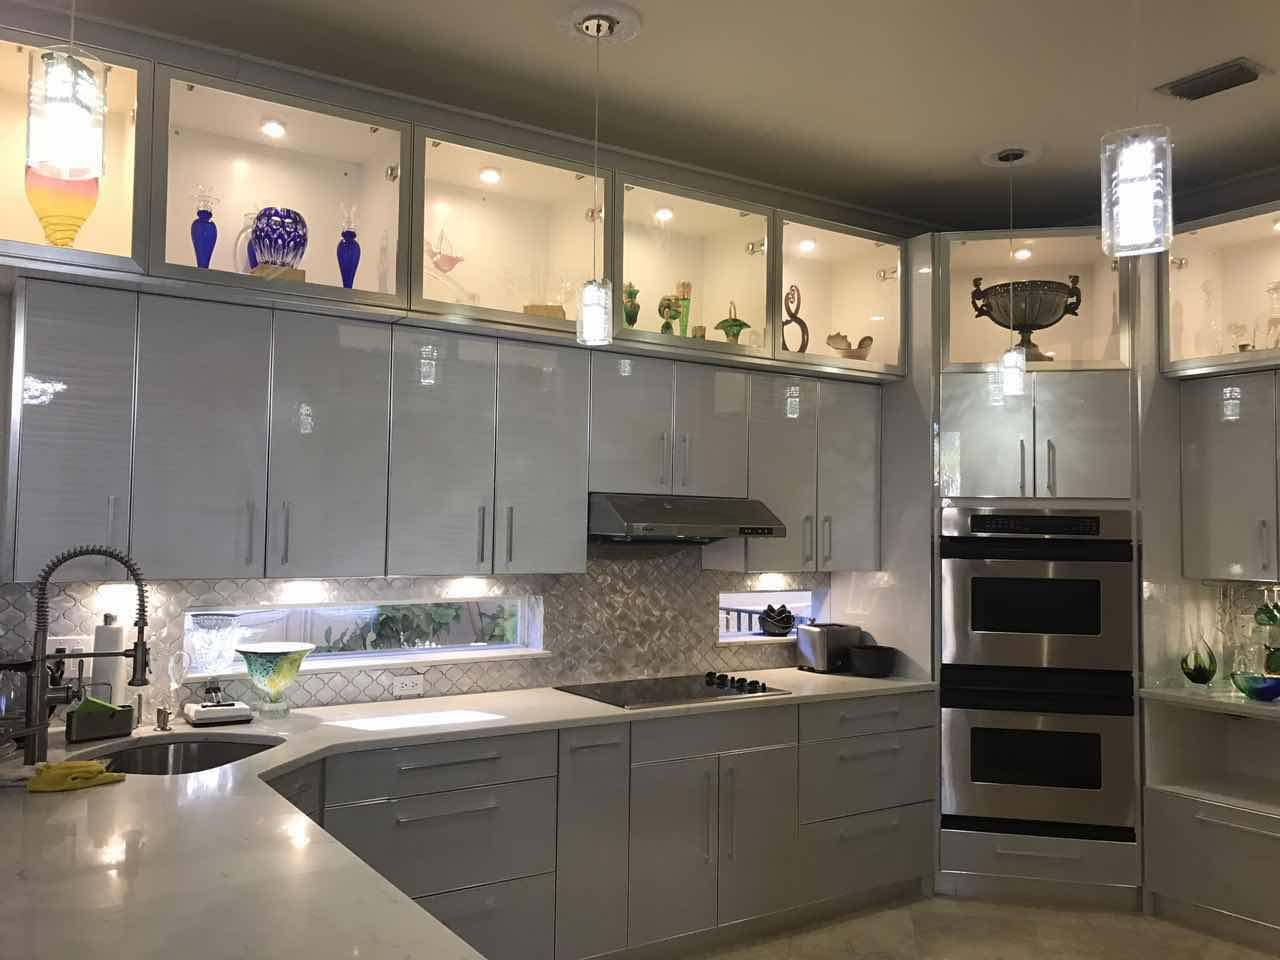 Kitchen Cabinets Brooklyn   Remodeling and Cabinets ...